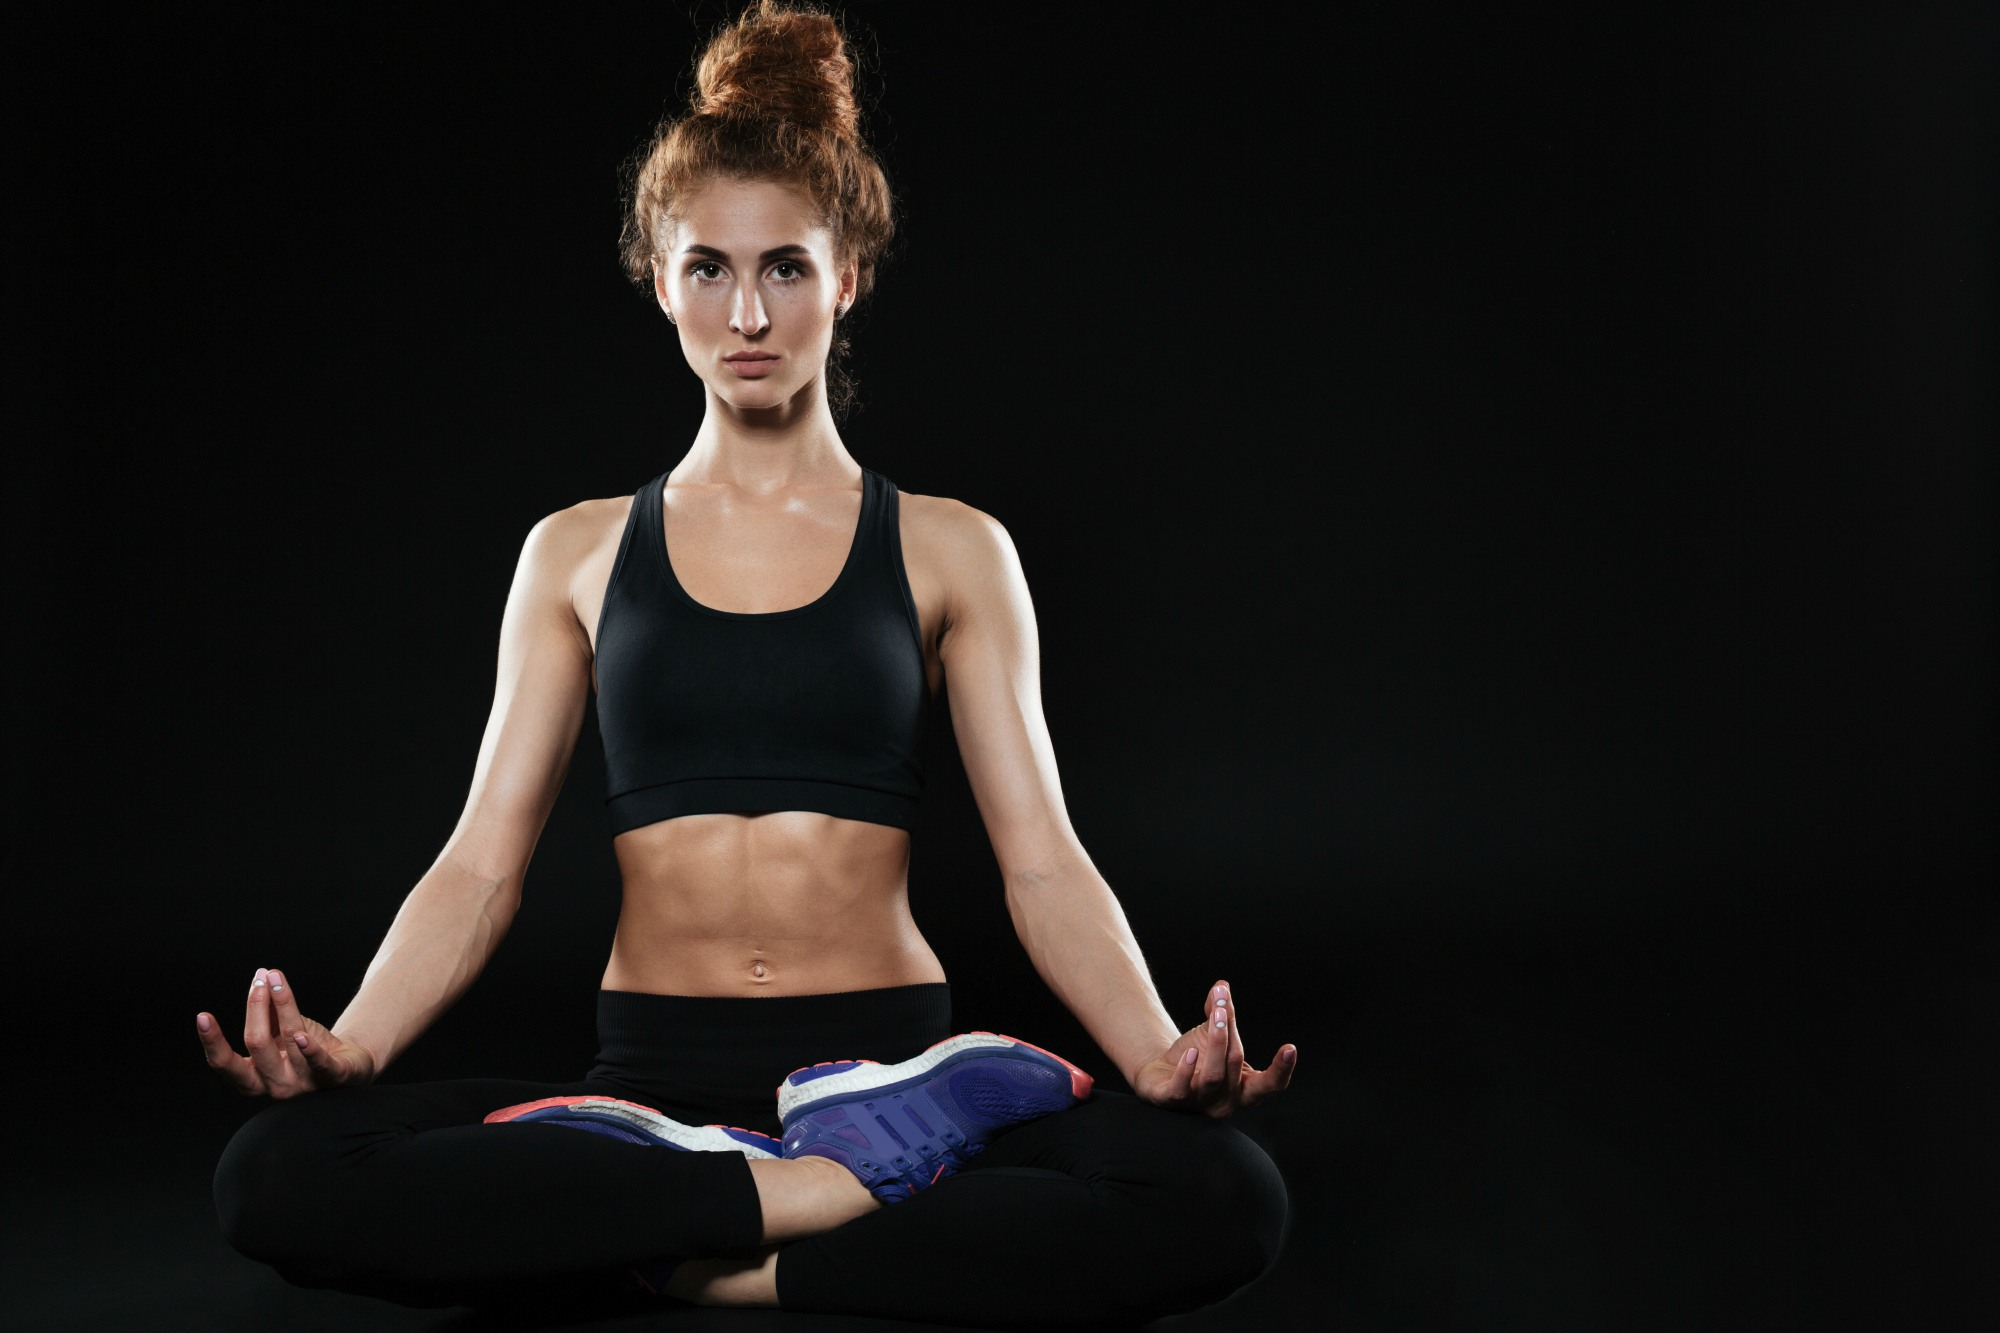 Meditate woman sitting in lotus pose